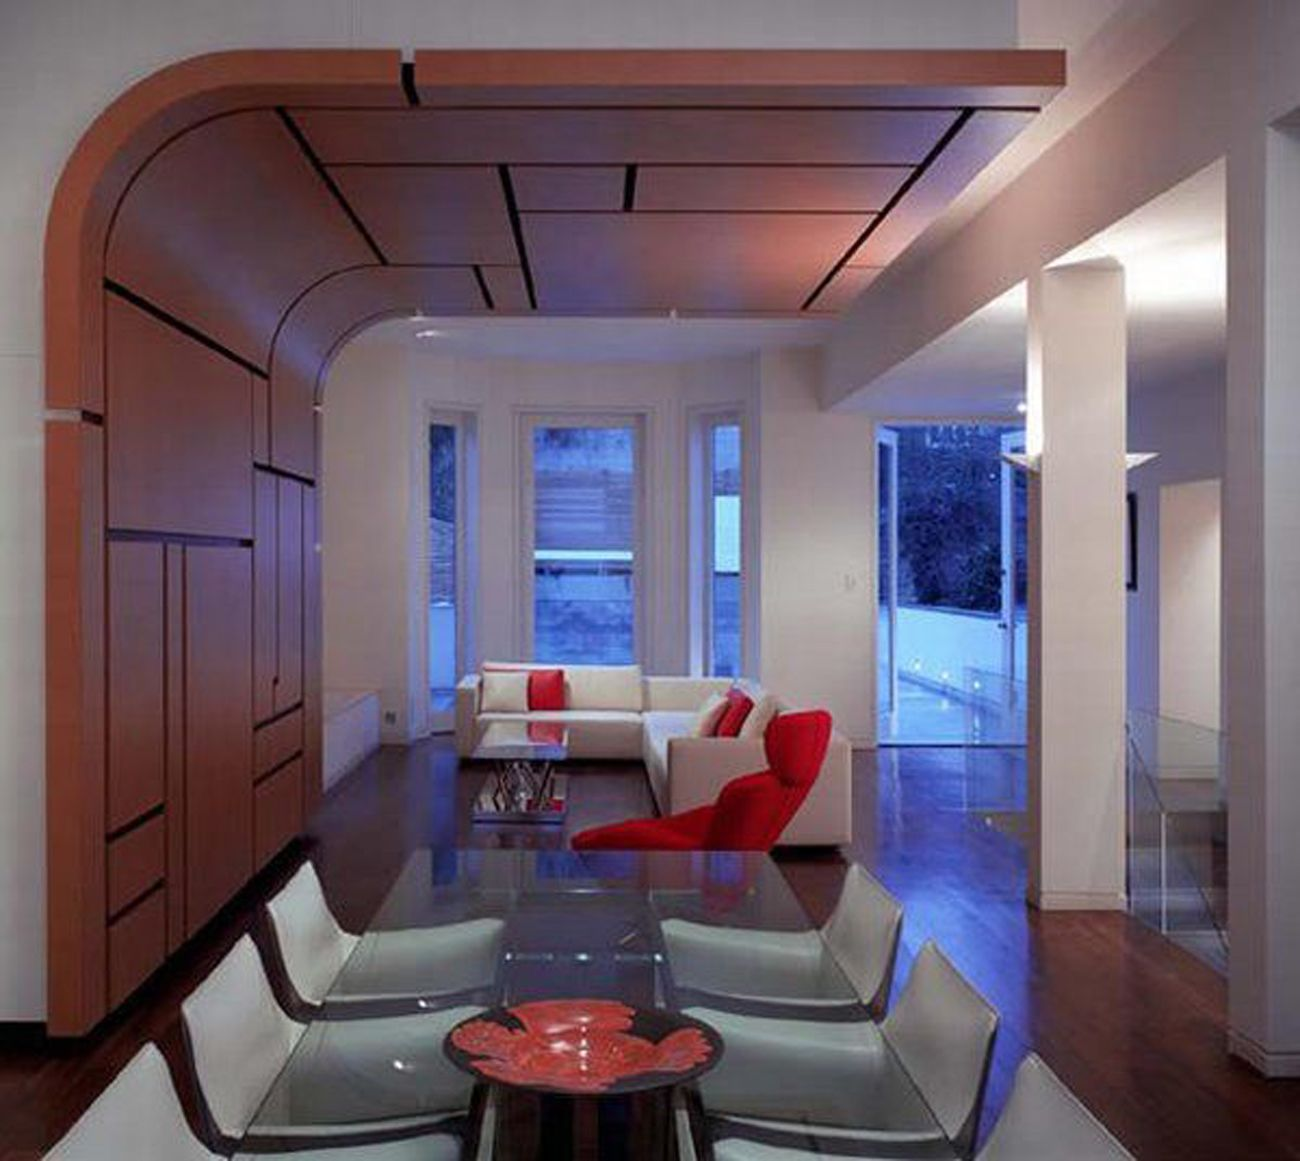 Amazing Interior, Cool Designing A Conference Room Ideas: Cozy Meeting Room With  Unique Wall And Ceiling Decoration Nice Design